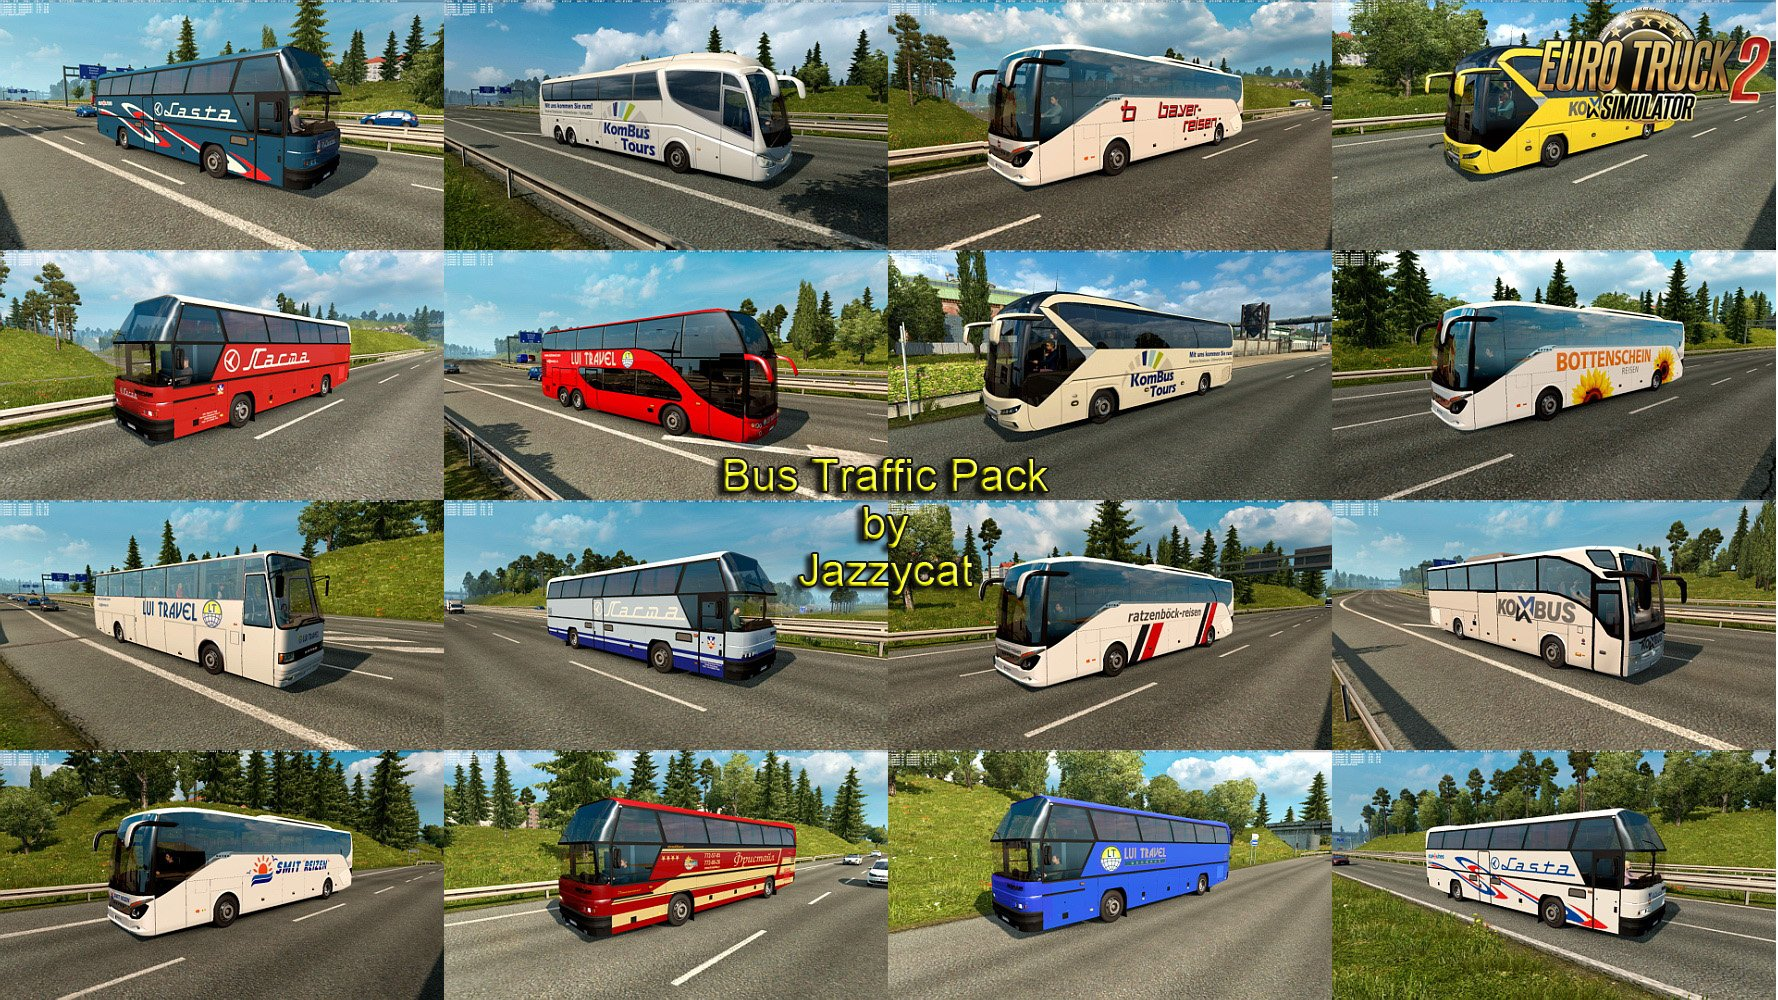 Bus Traffic Pack v3.3 by Jazzycat